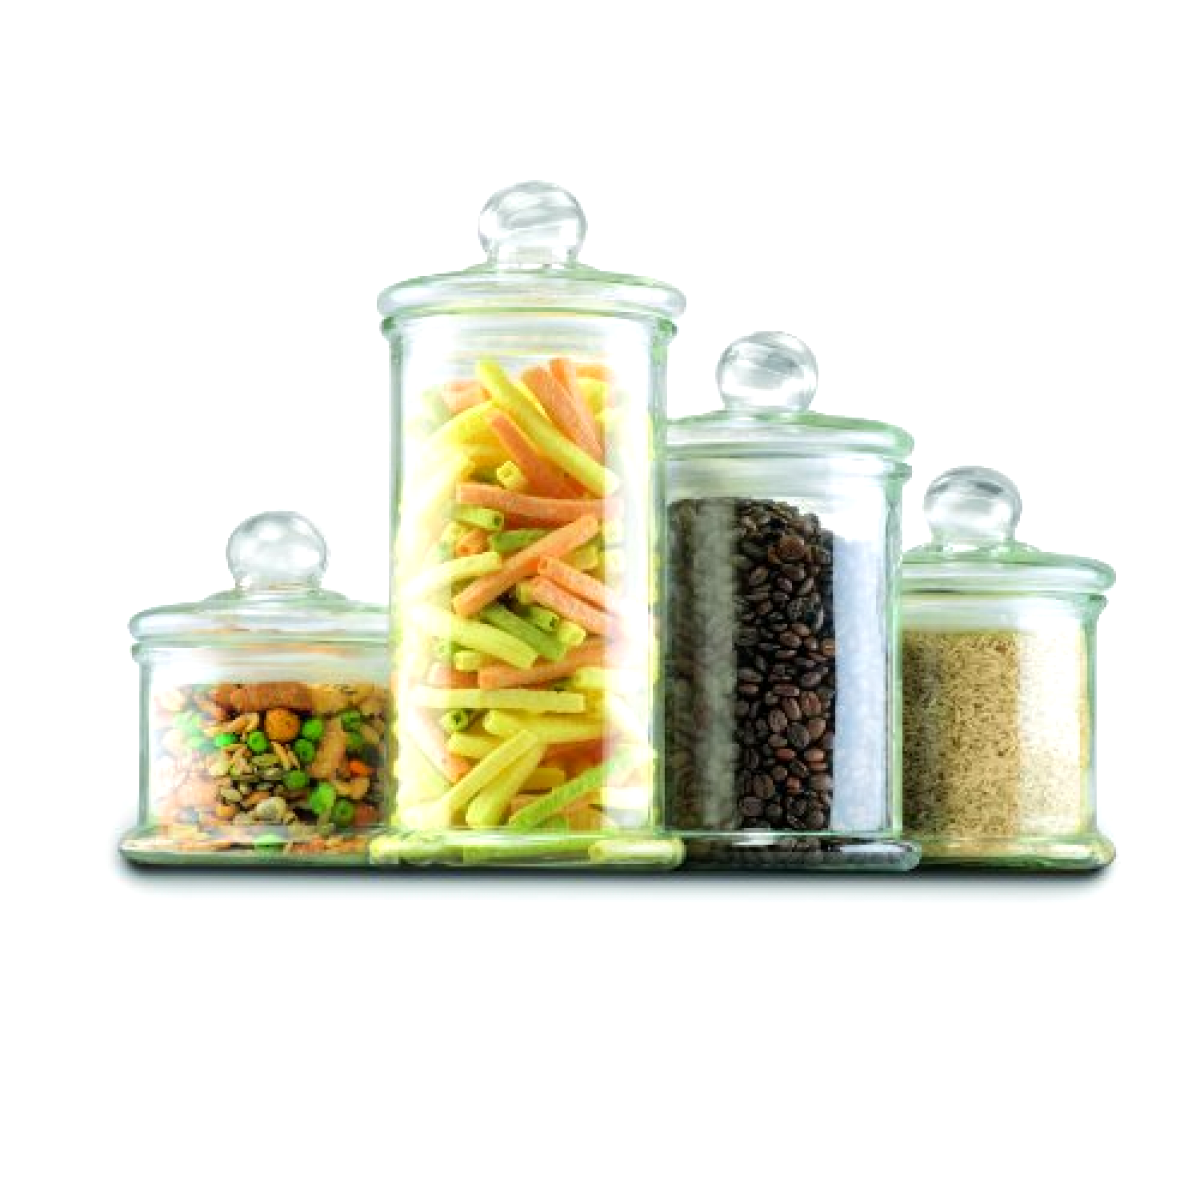 4 Piece Glass Canister Set with Lids - 4 Sizes 58oz-46oz-27oz-21oz - Free Ship